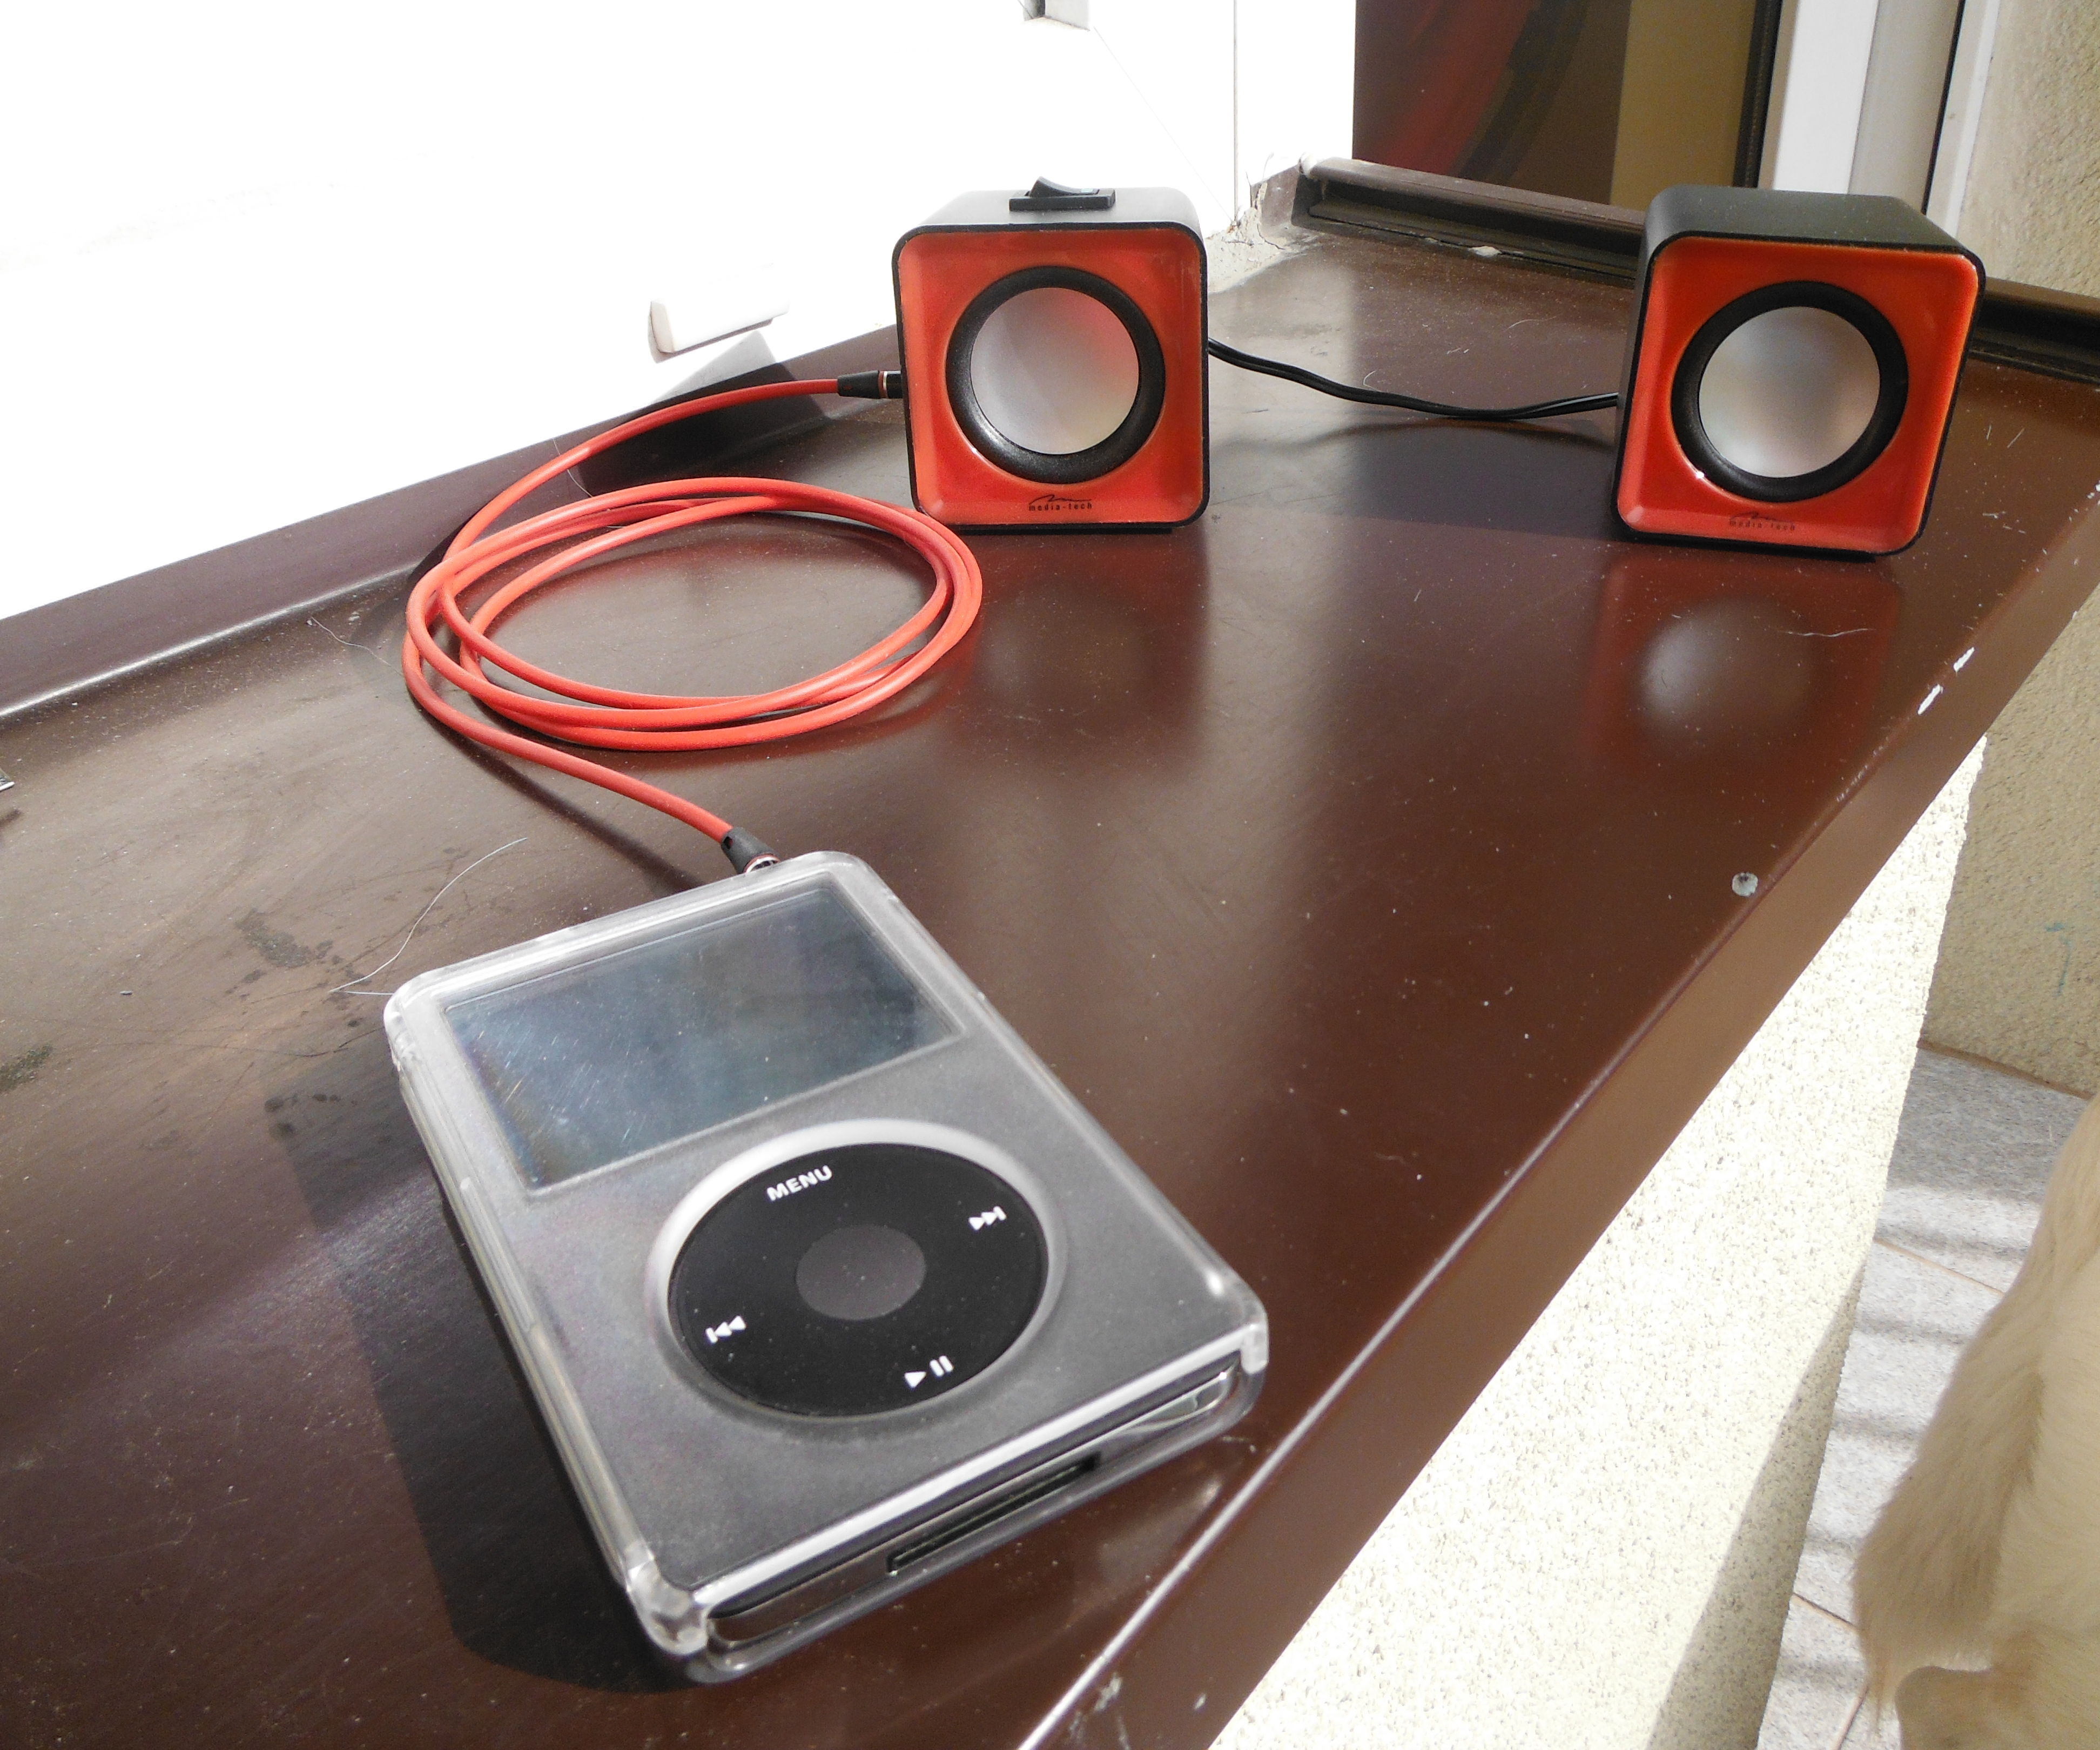 USB Speakers Into Portable Battery Powered Speakers!